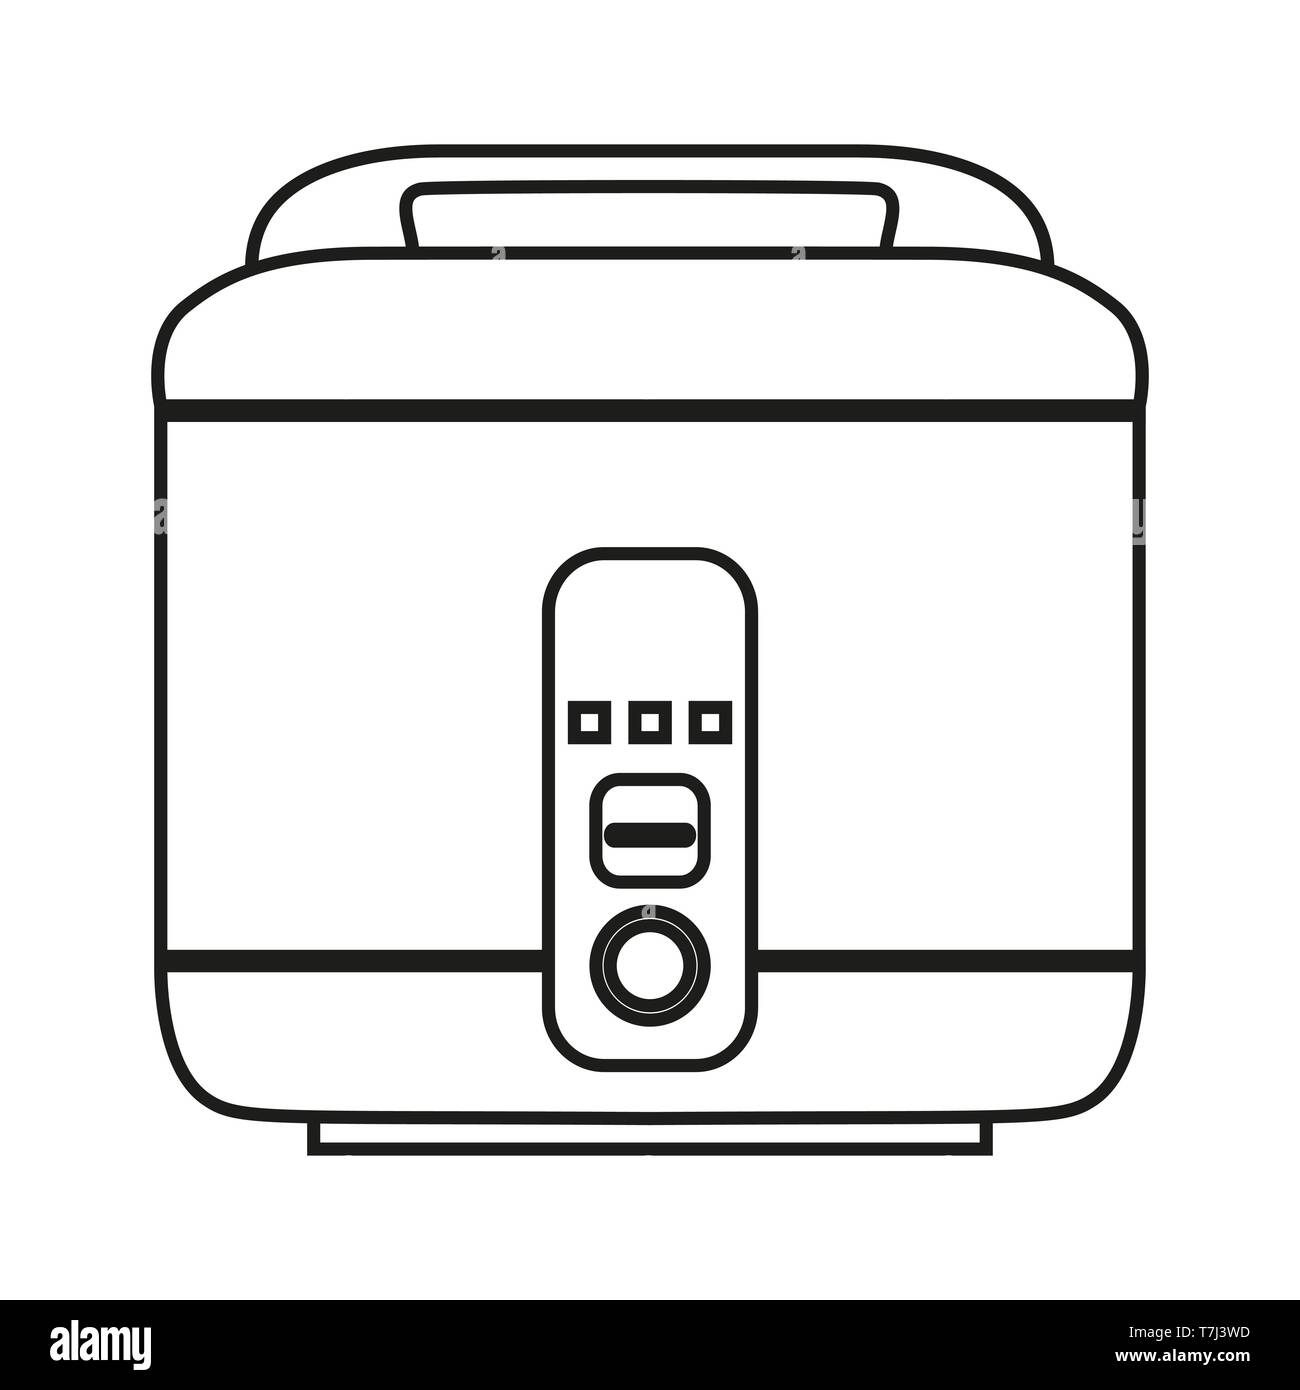 hight resolution of rice cooker line icon isolated on white background outline thin black equipment household vector